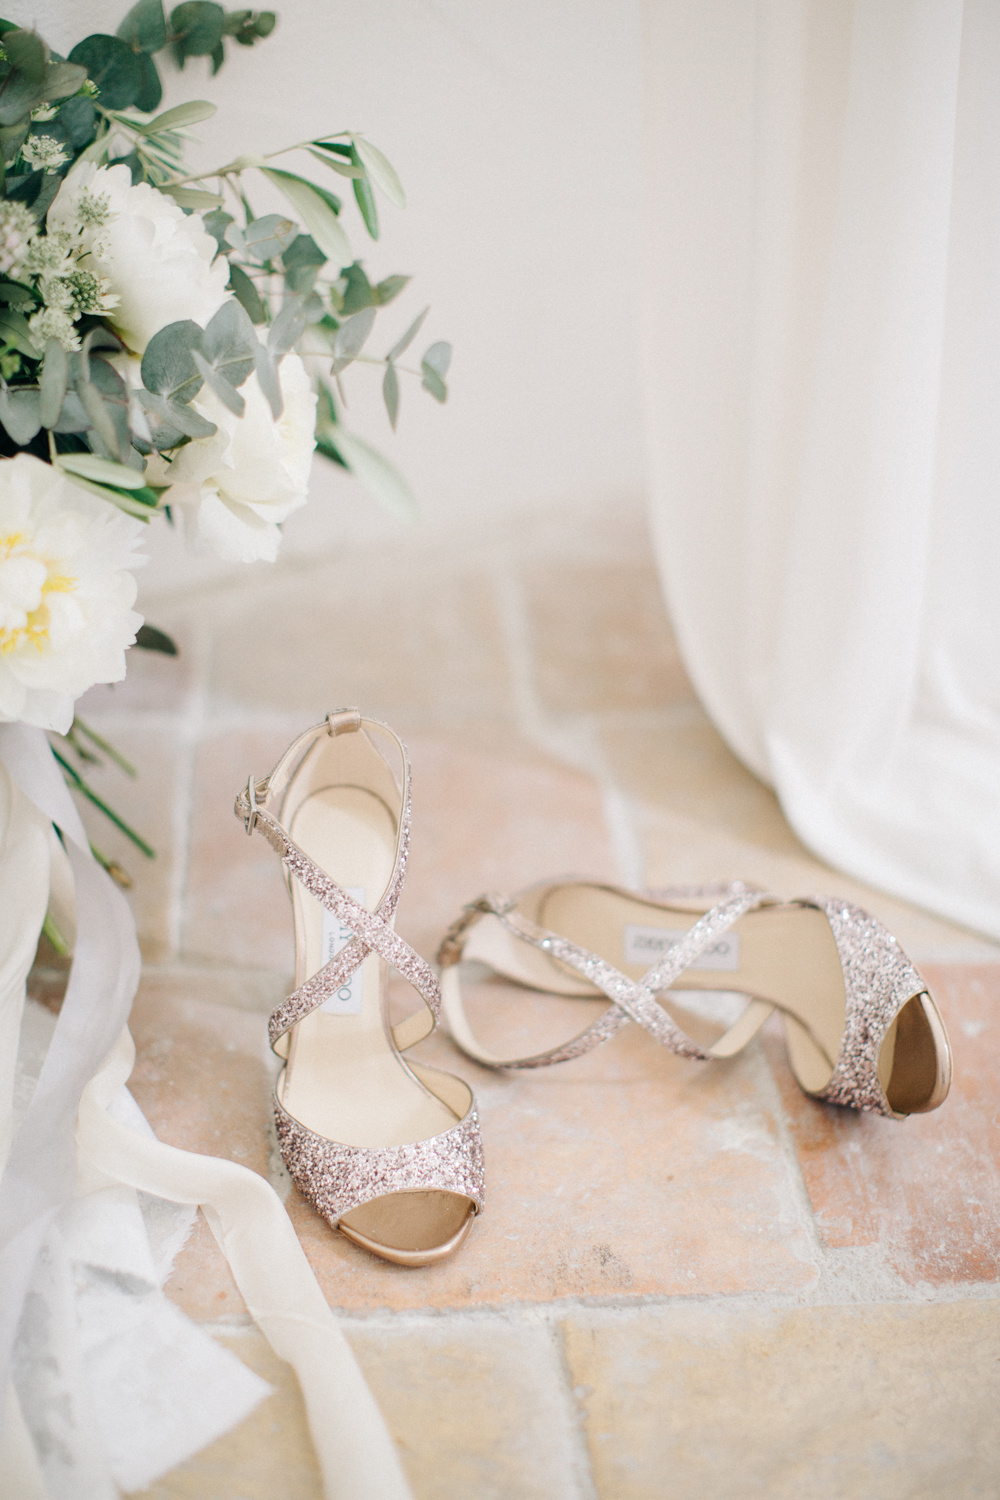 Wedding Shoes The Best For 2019 From Traditional To Trainers